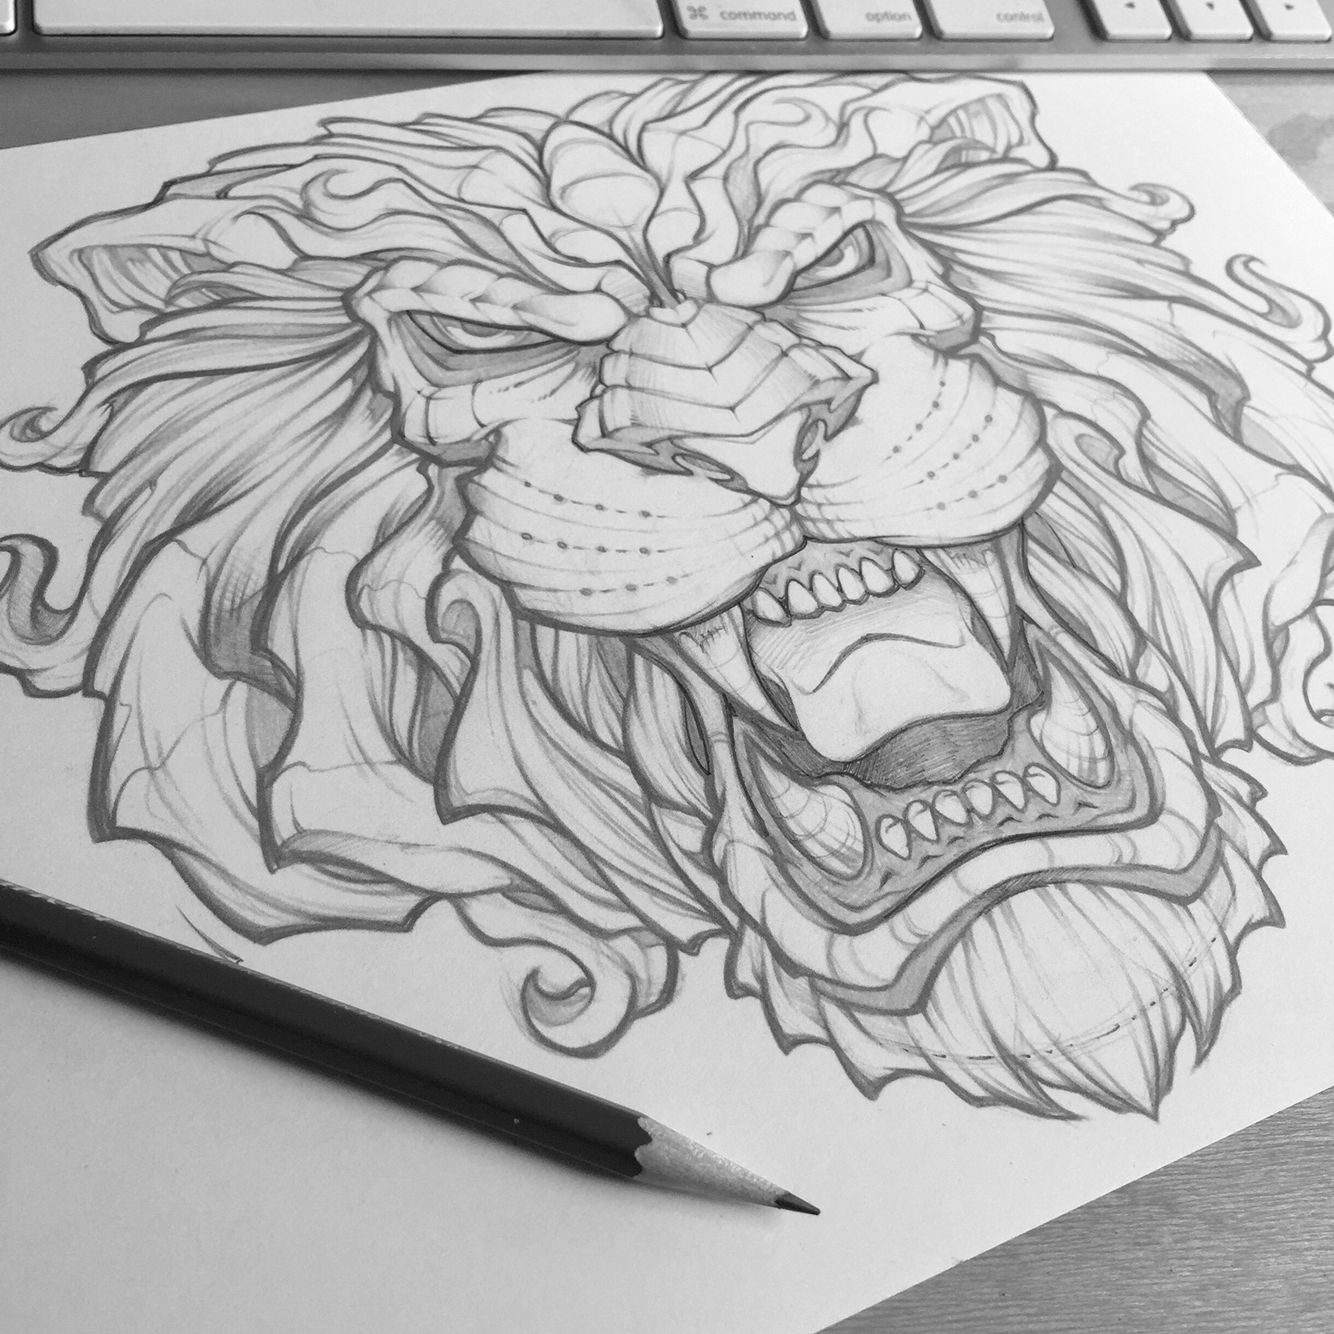 Reworking a lion drawing from a couple years ago. #king #lion #absorb81 #art #sketch